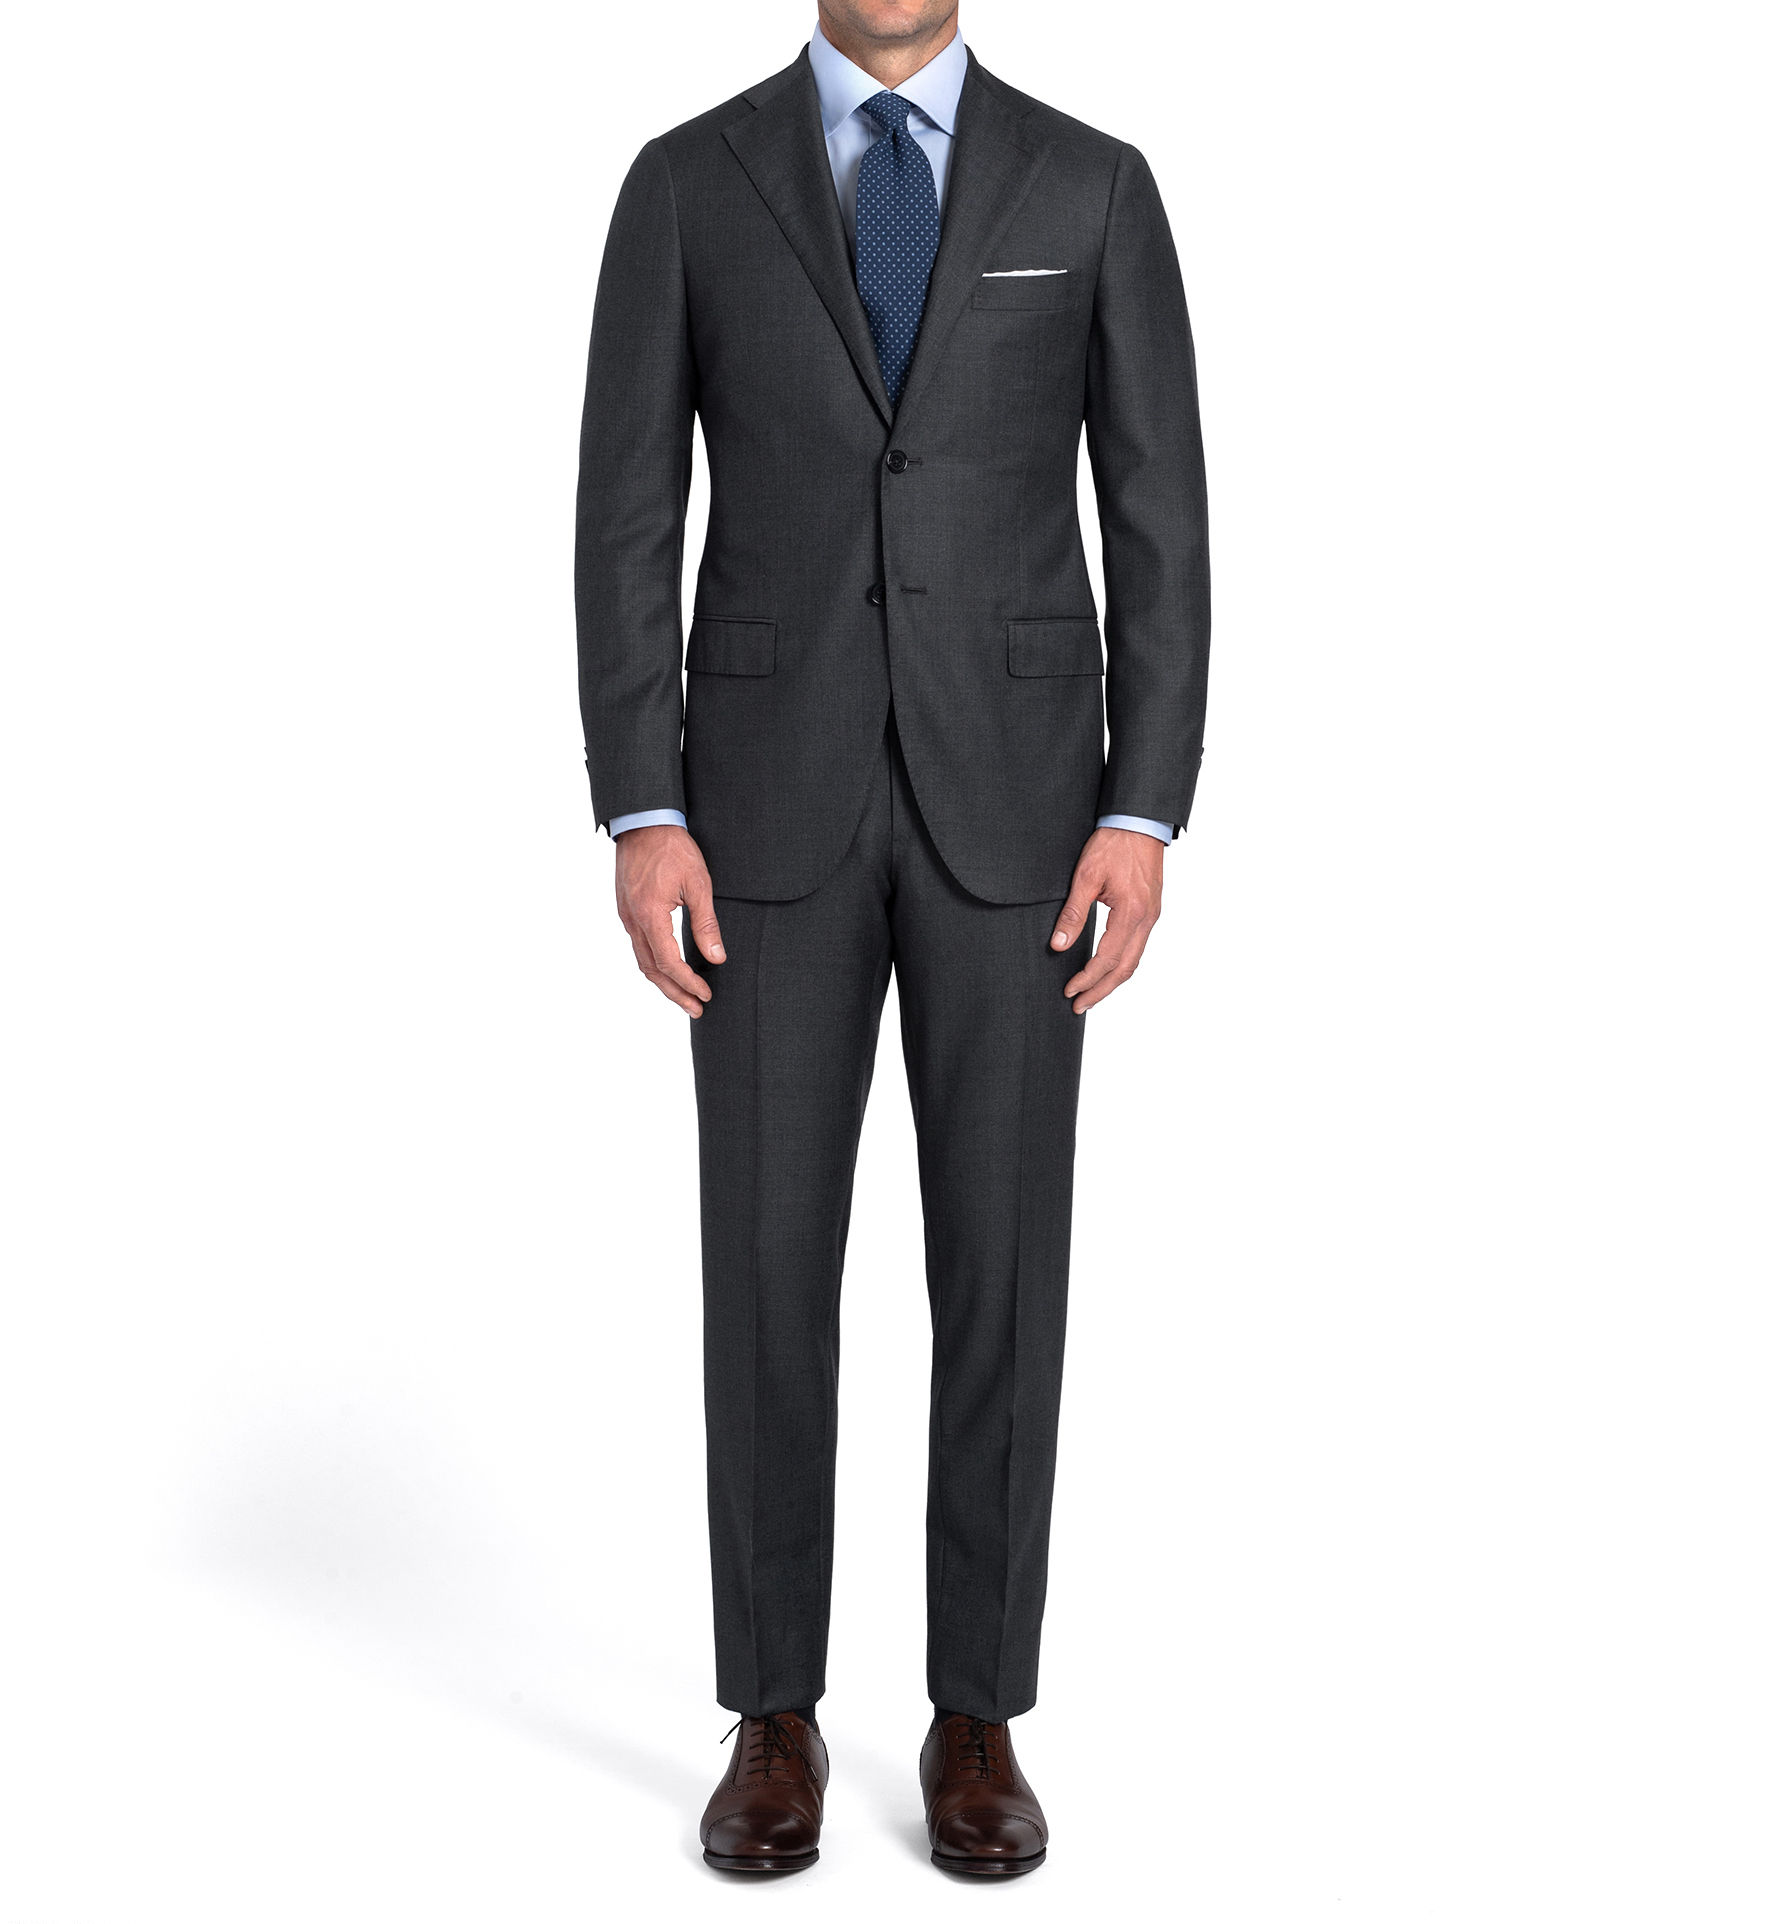 Zoom Image of Allen Grey S110s Nailhead Suit with Cuffed Trouser